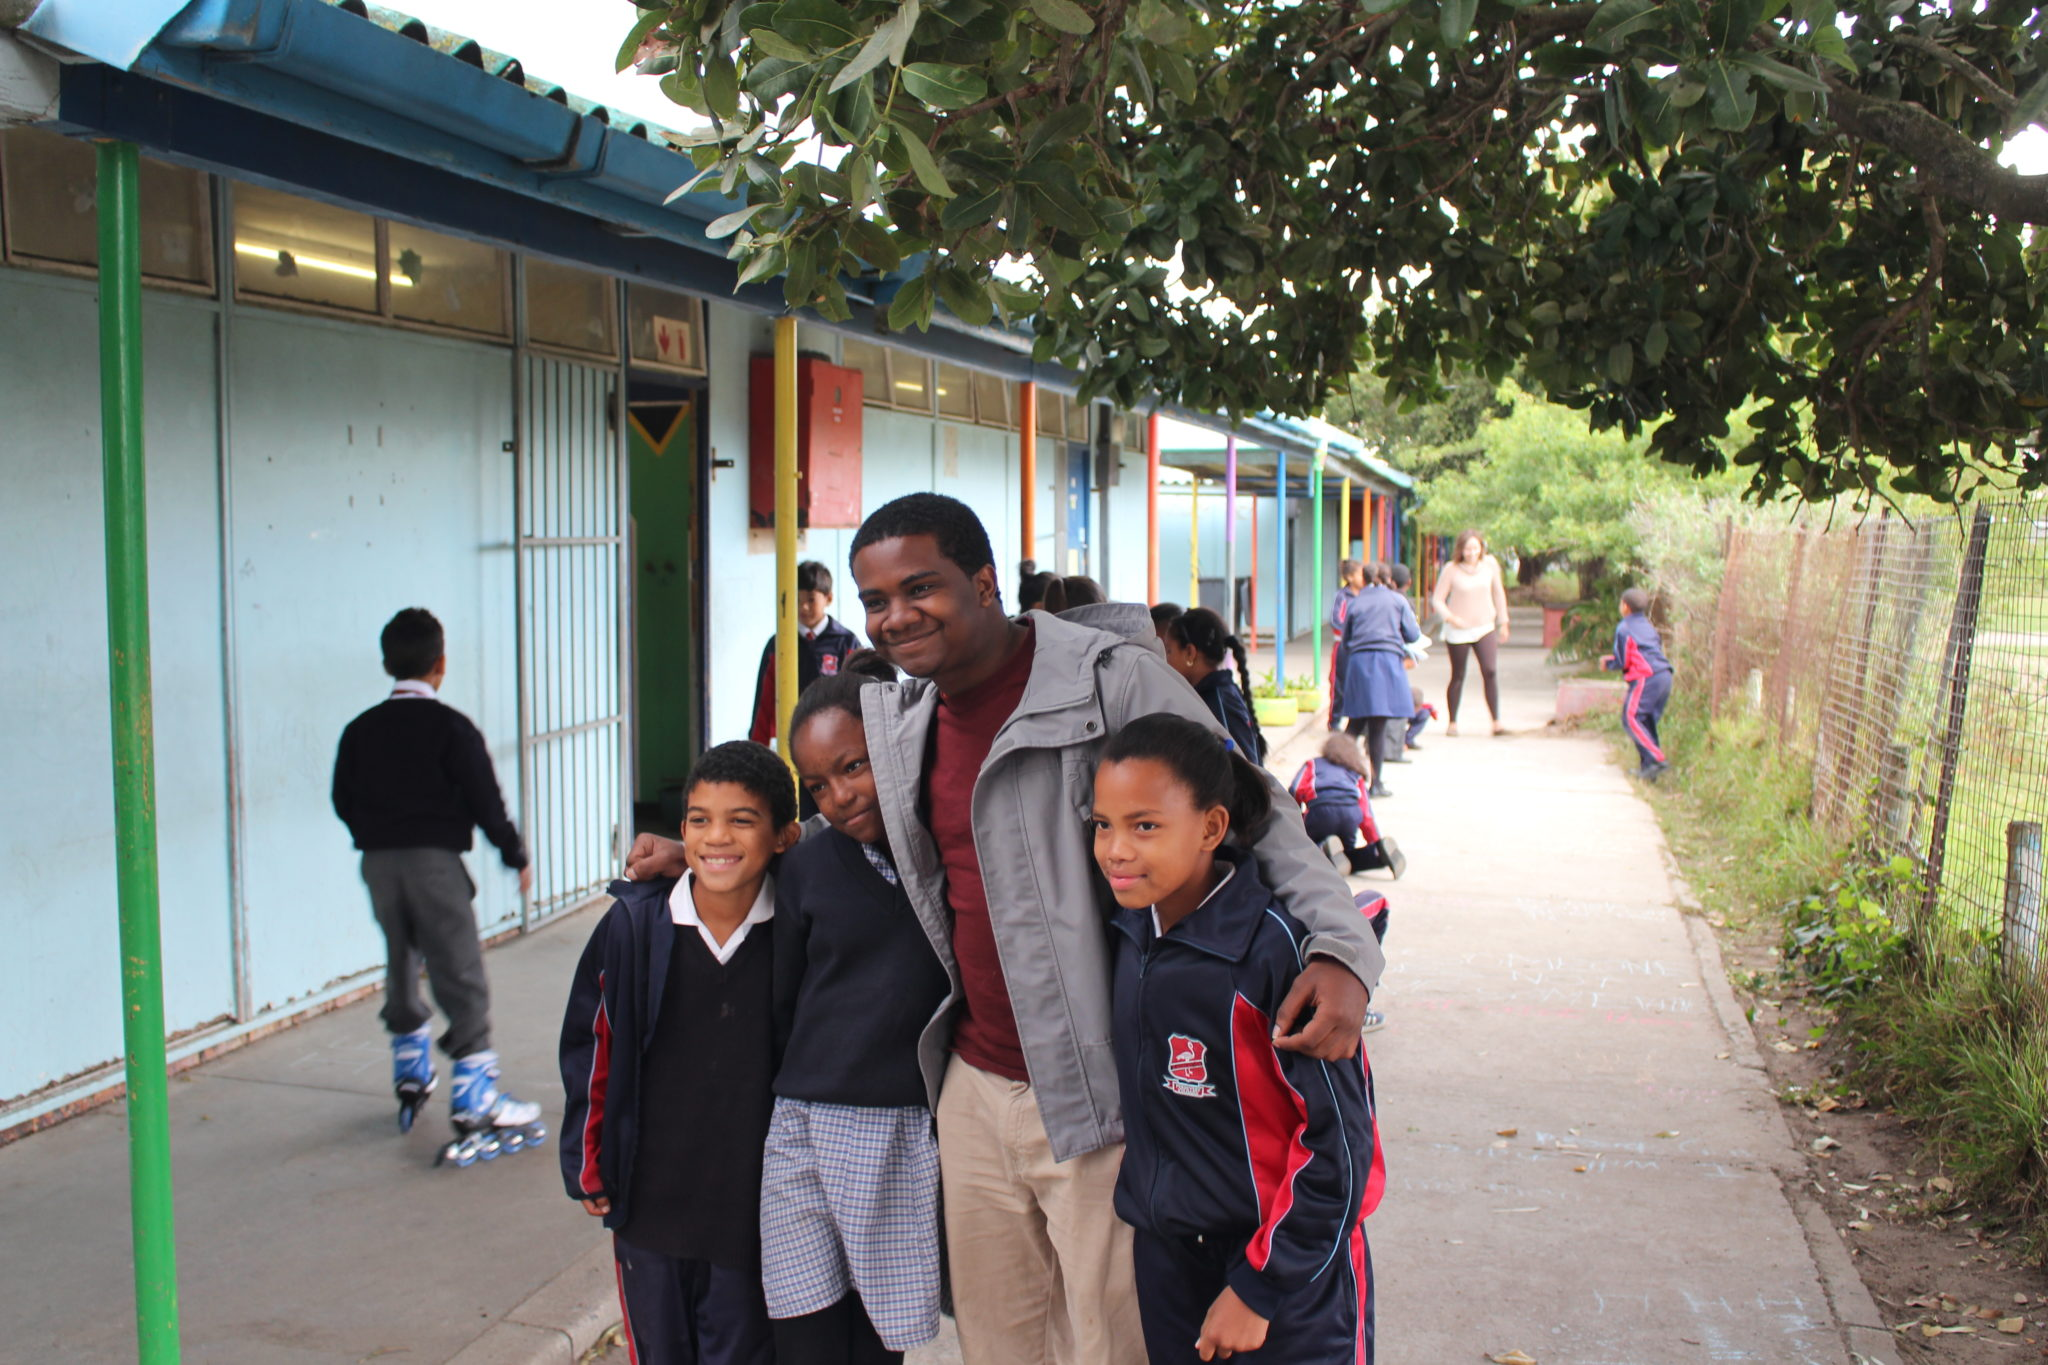 A Mercer student is pictured with two local kids on Mercer On Mission in South Africa.